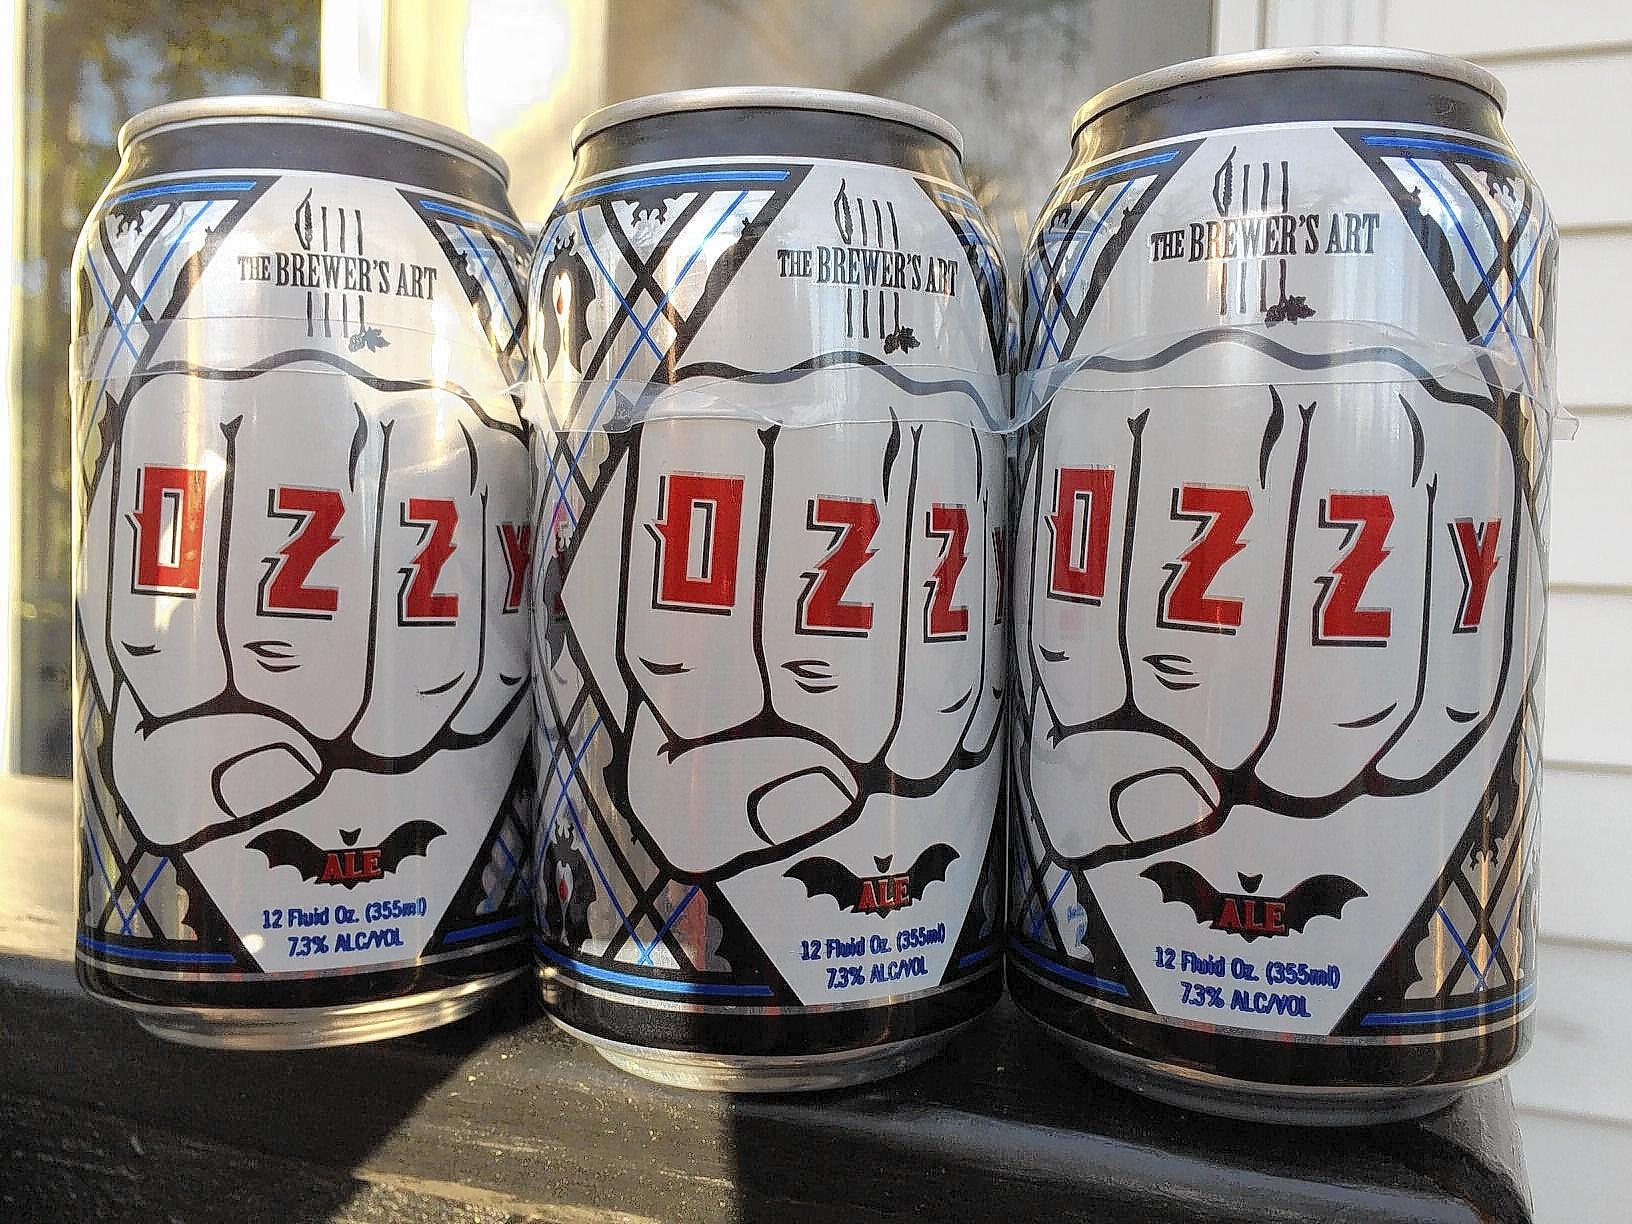 Ozzy, the Belgian-style strong pale ale that was made by the Baltimore-based company The Brewer's Art.